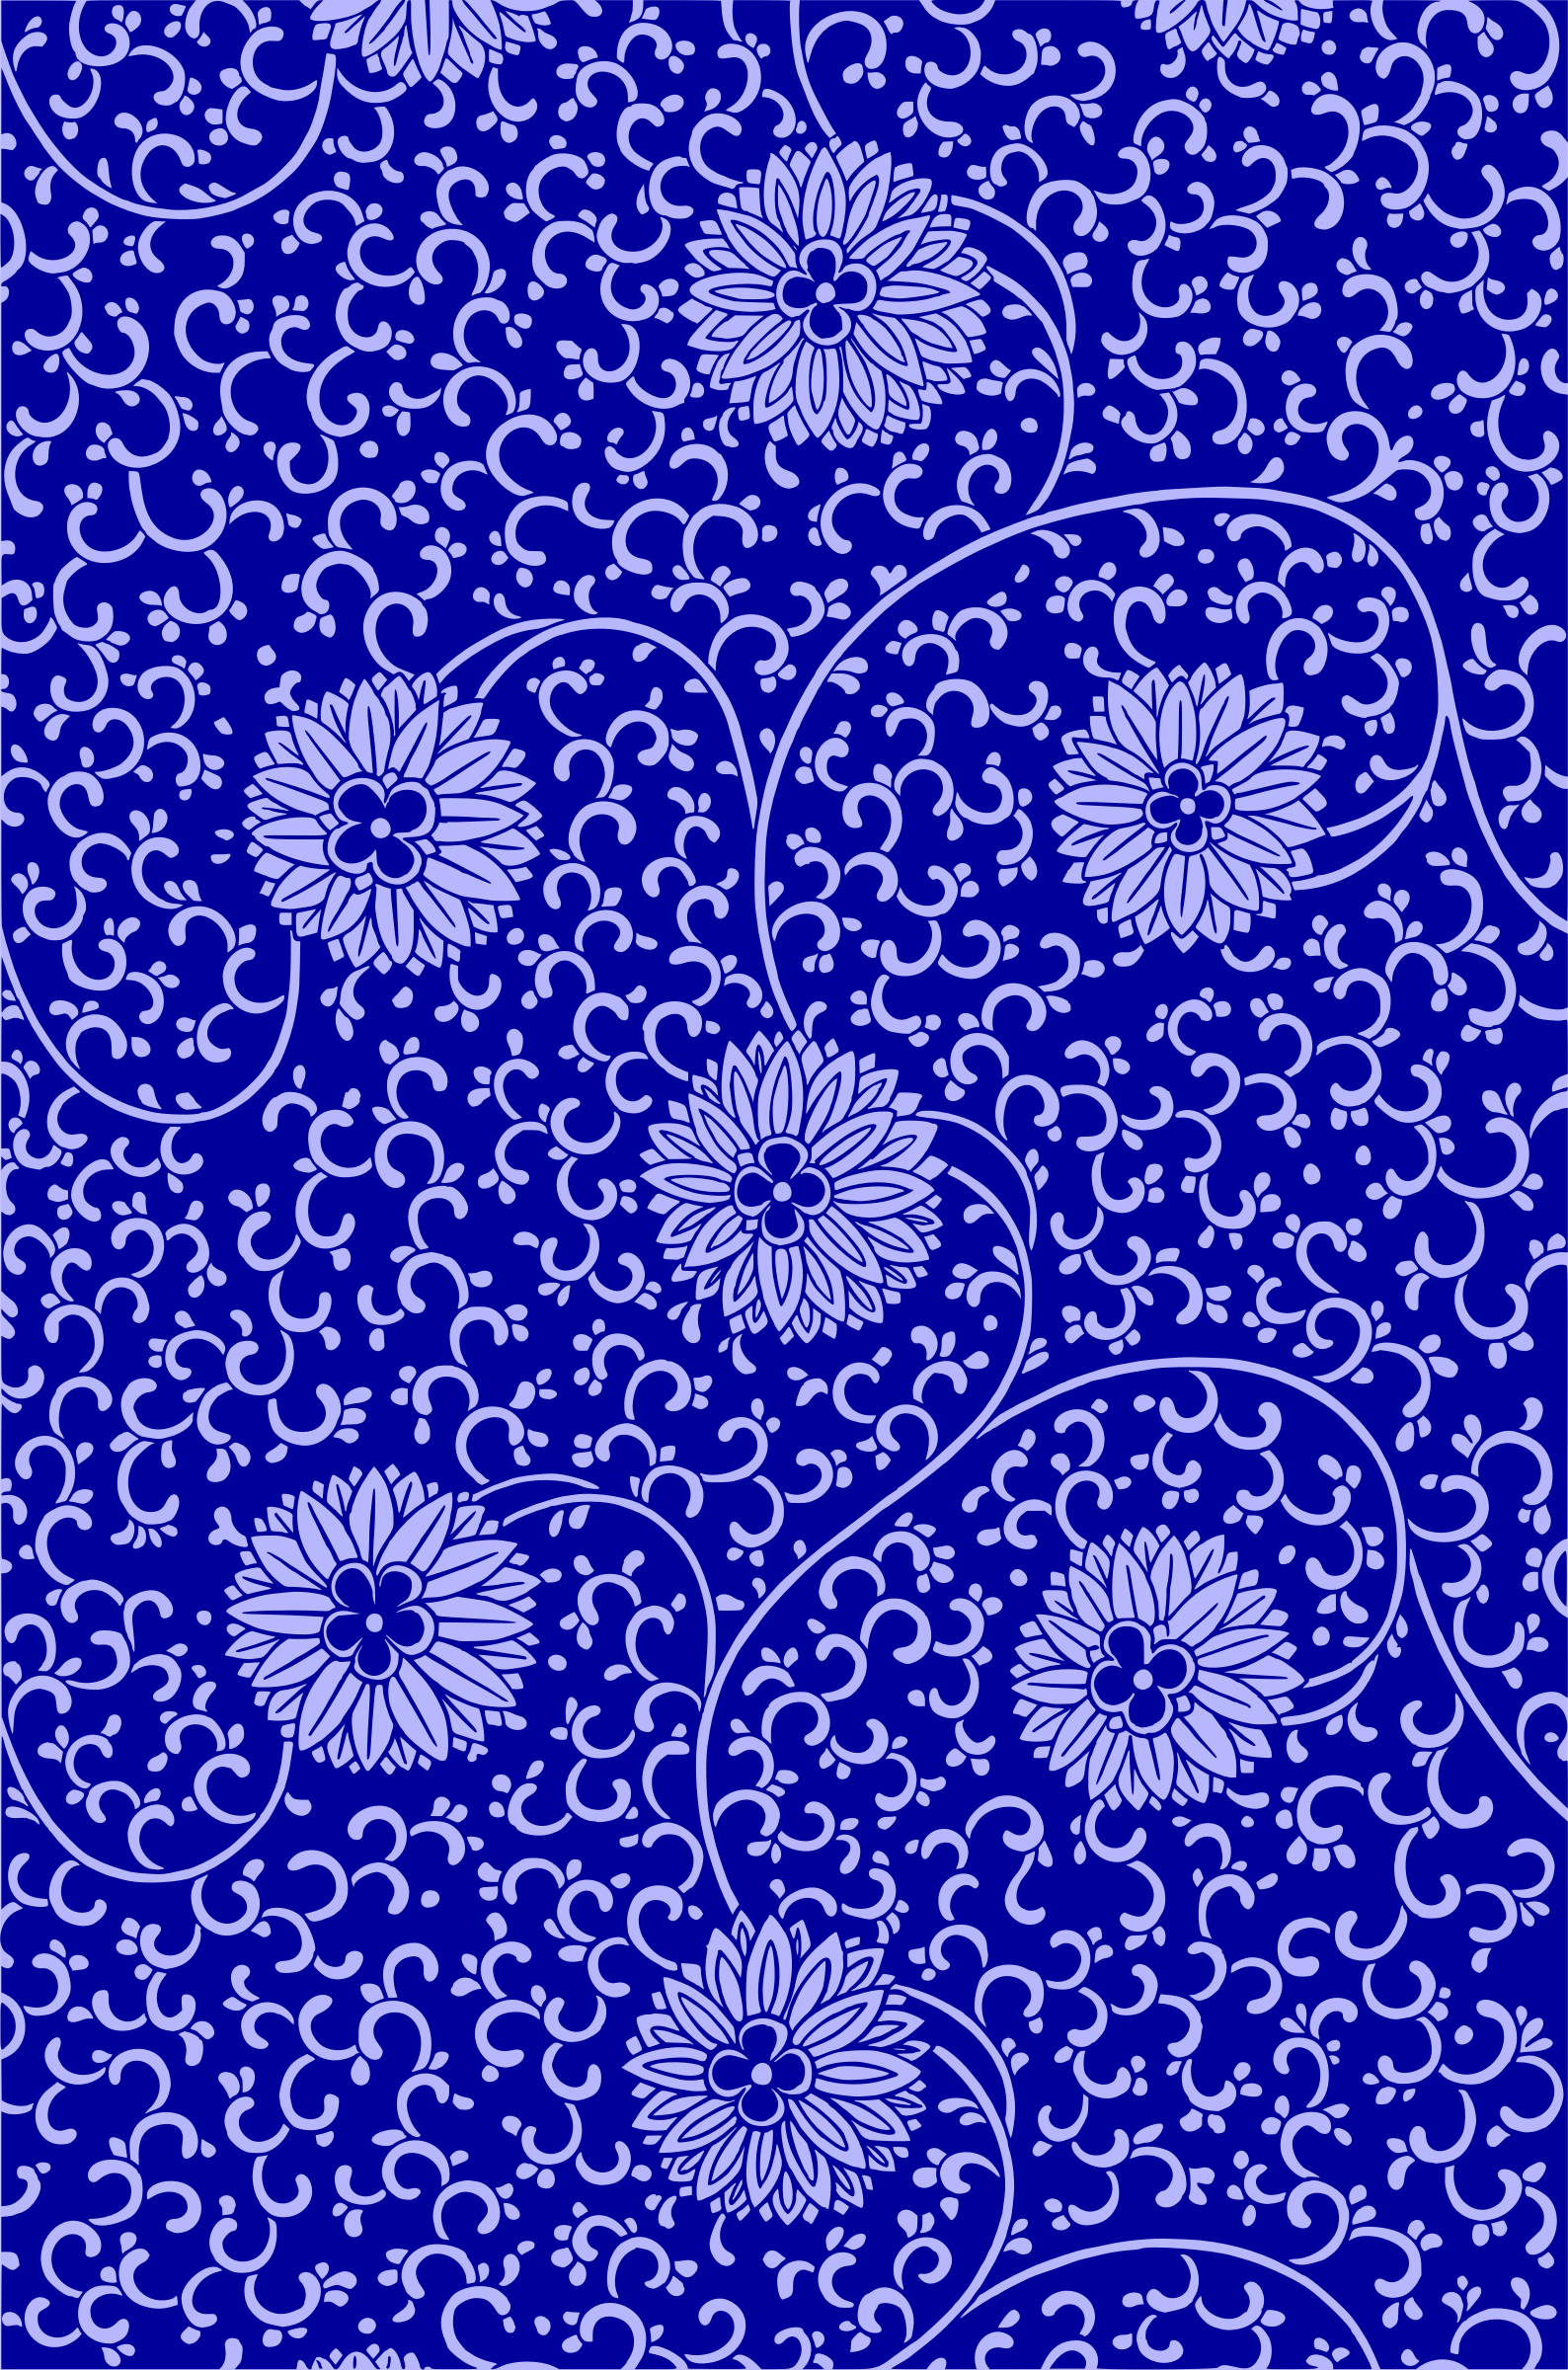 Floral pattern 2 (colour 3) by Firkin